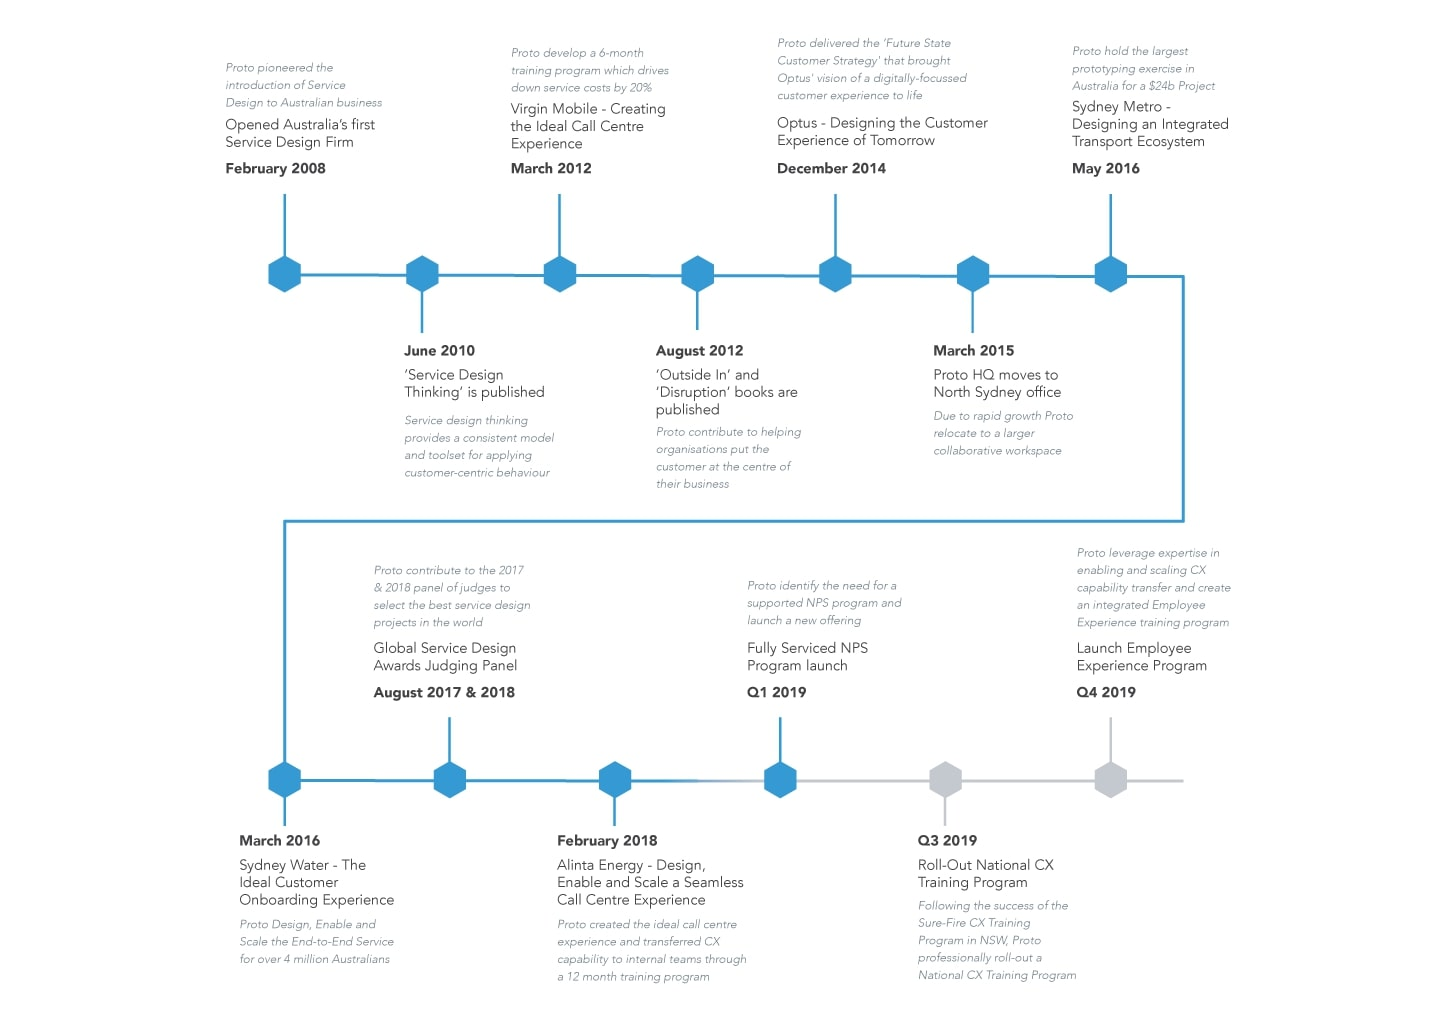 The Proto Journey; timeline from 2008 to present